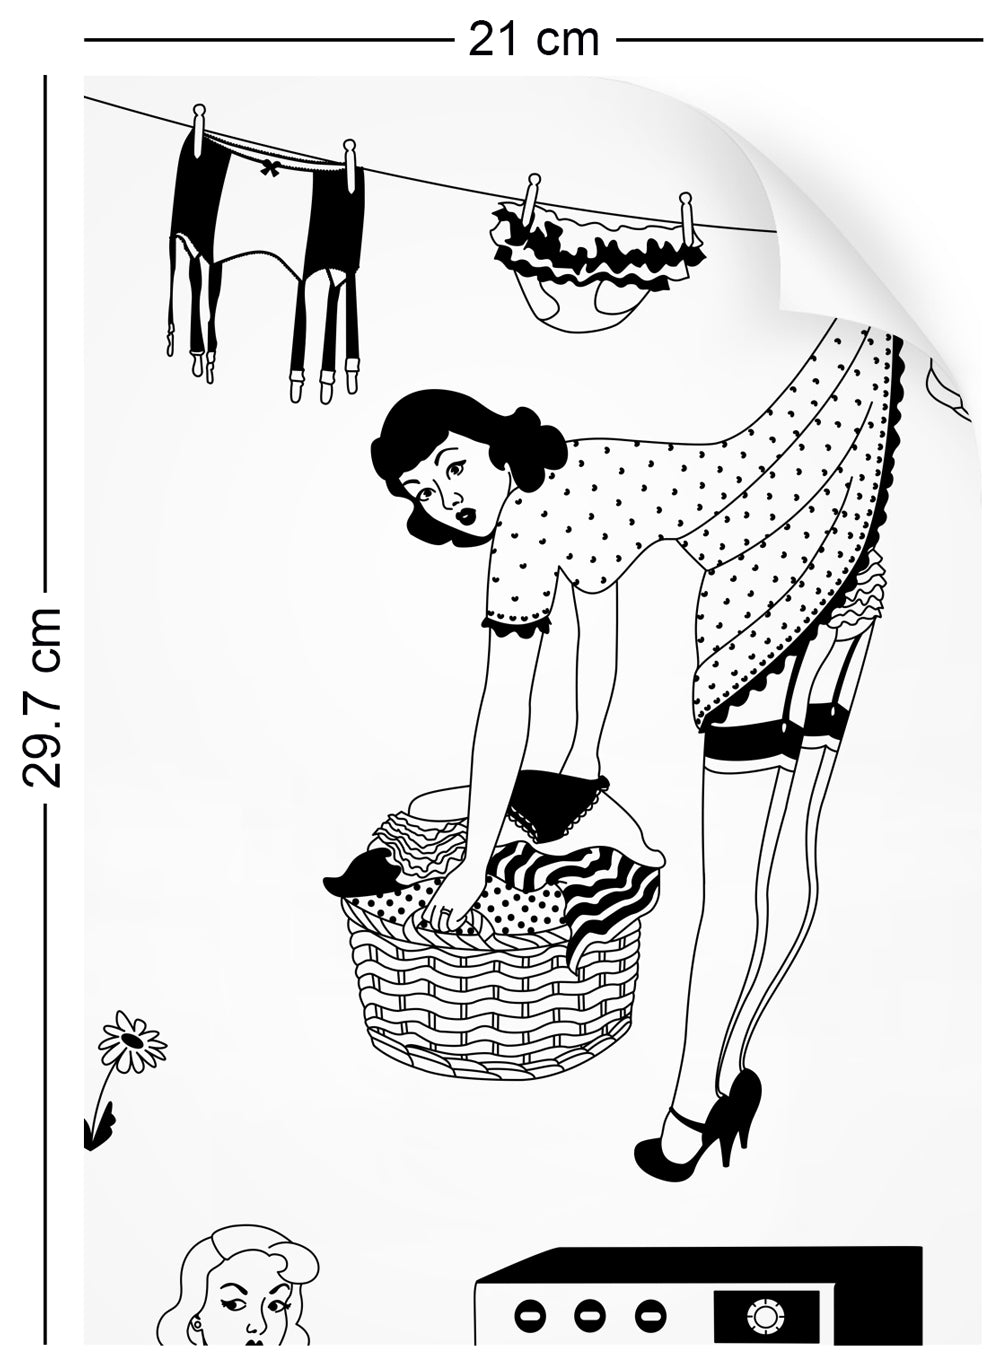 a4 wallpaper sample with retro design of 50s housewives in monochrome